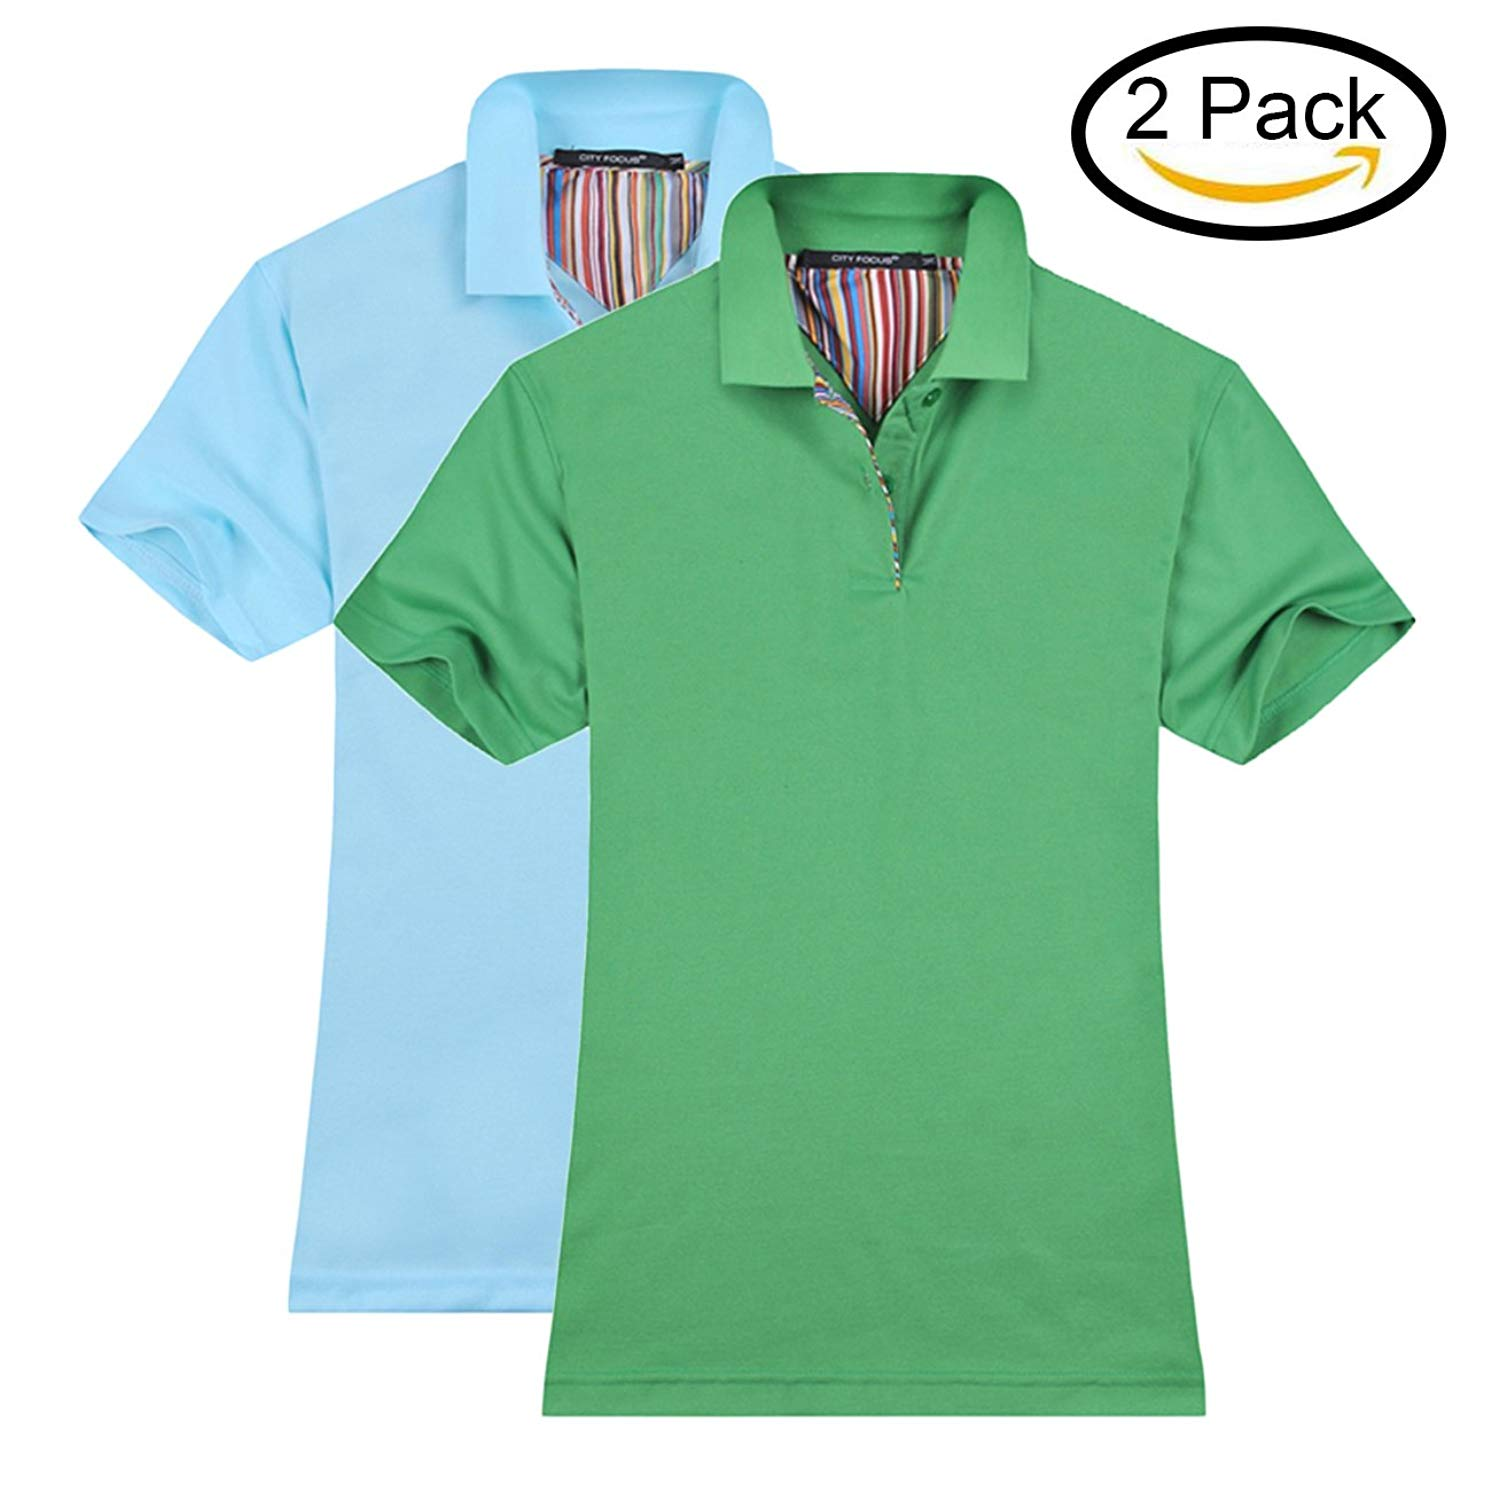 Cheap Polo Shirts For Womens Workwear Find Polo Shirts For Womens